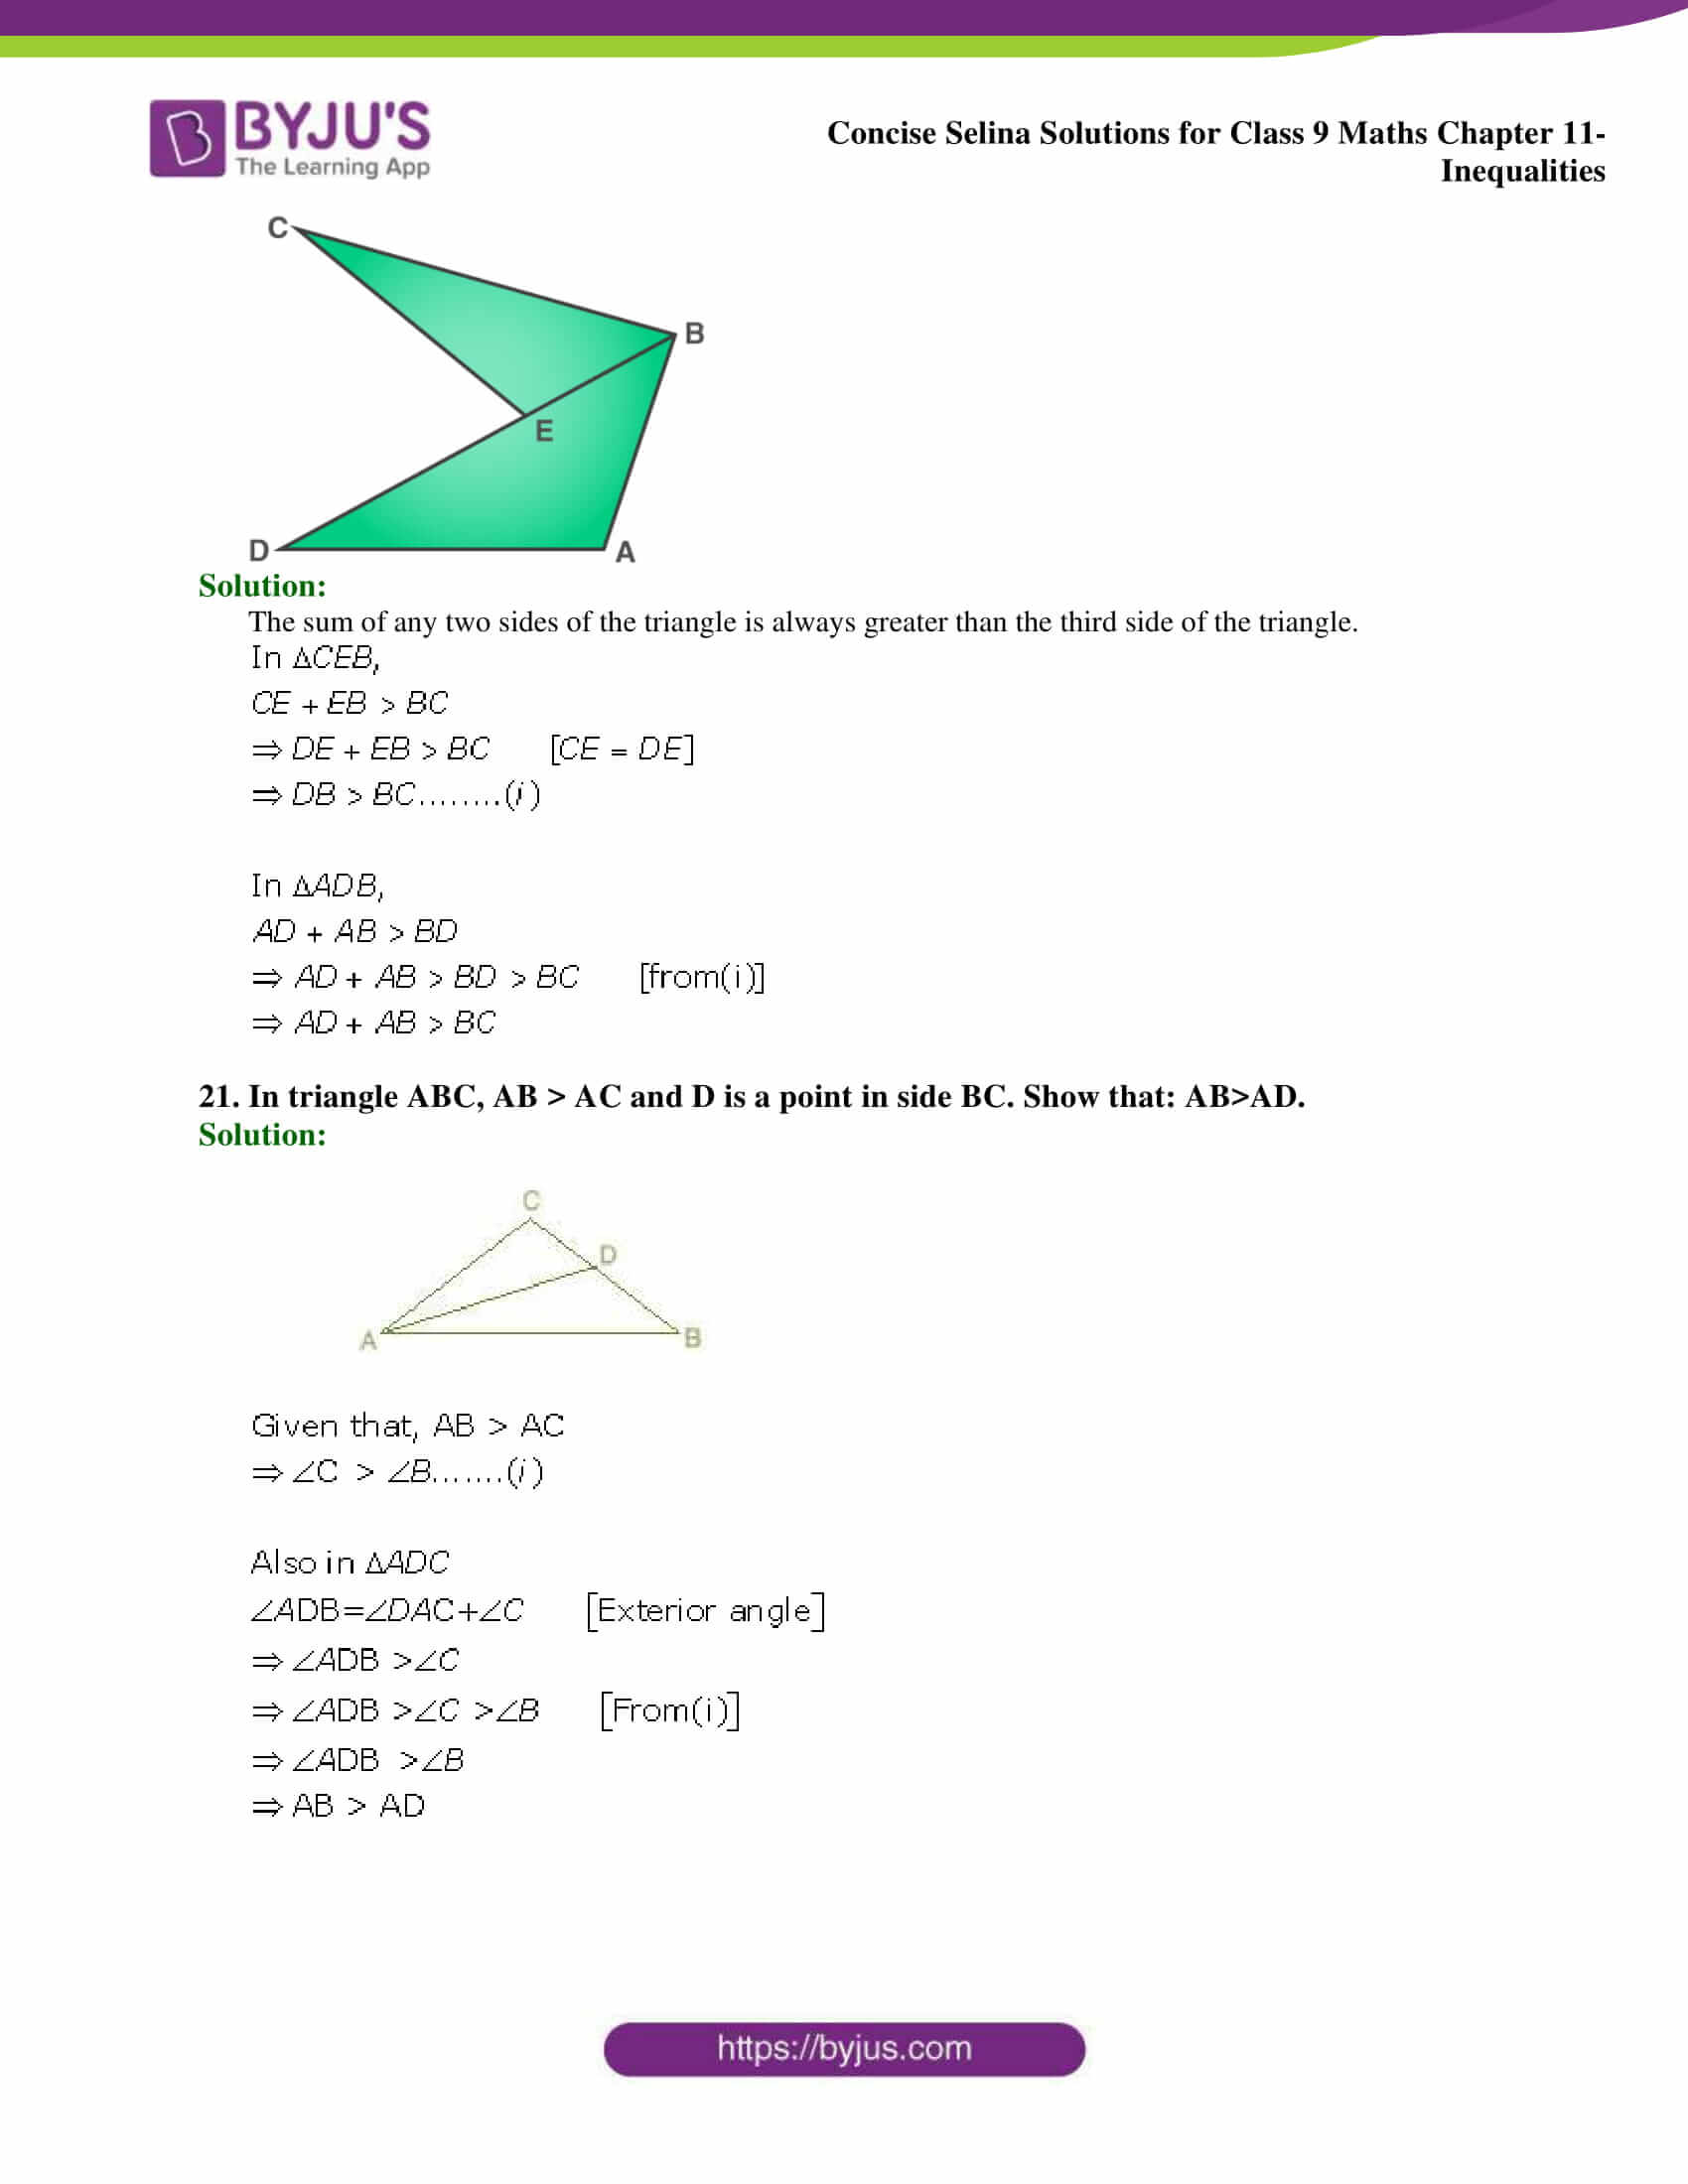 selina Solutions for Class 9 Maths Chapter 11 part 16